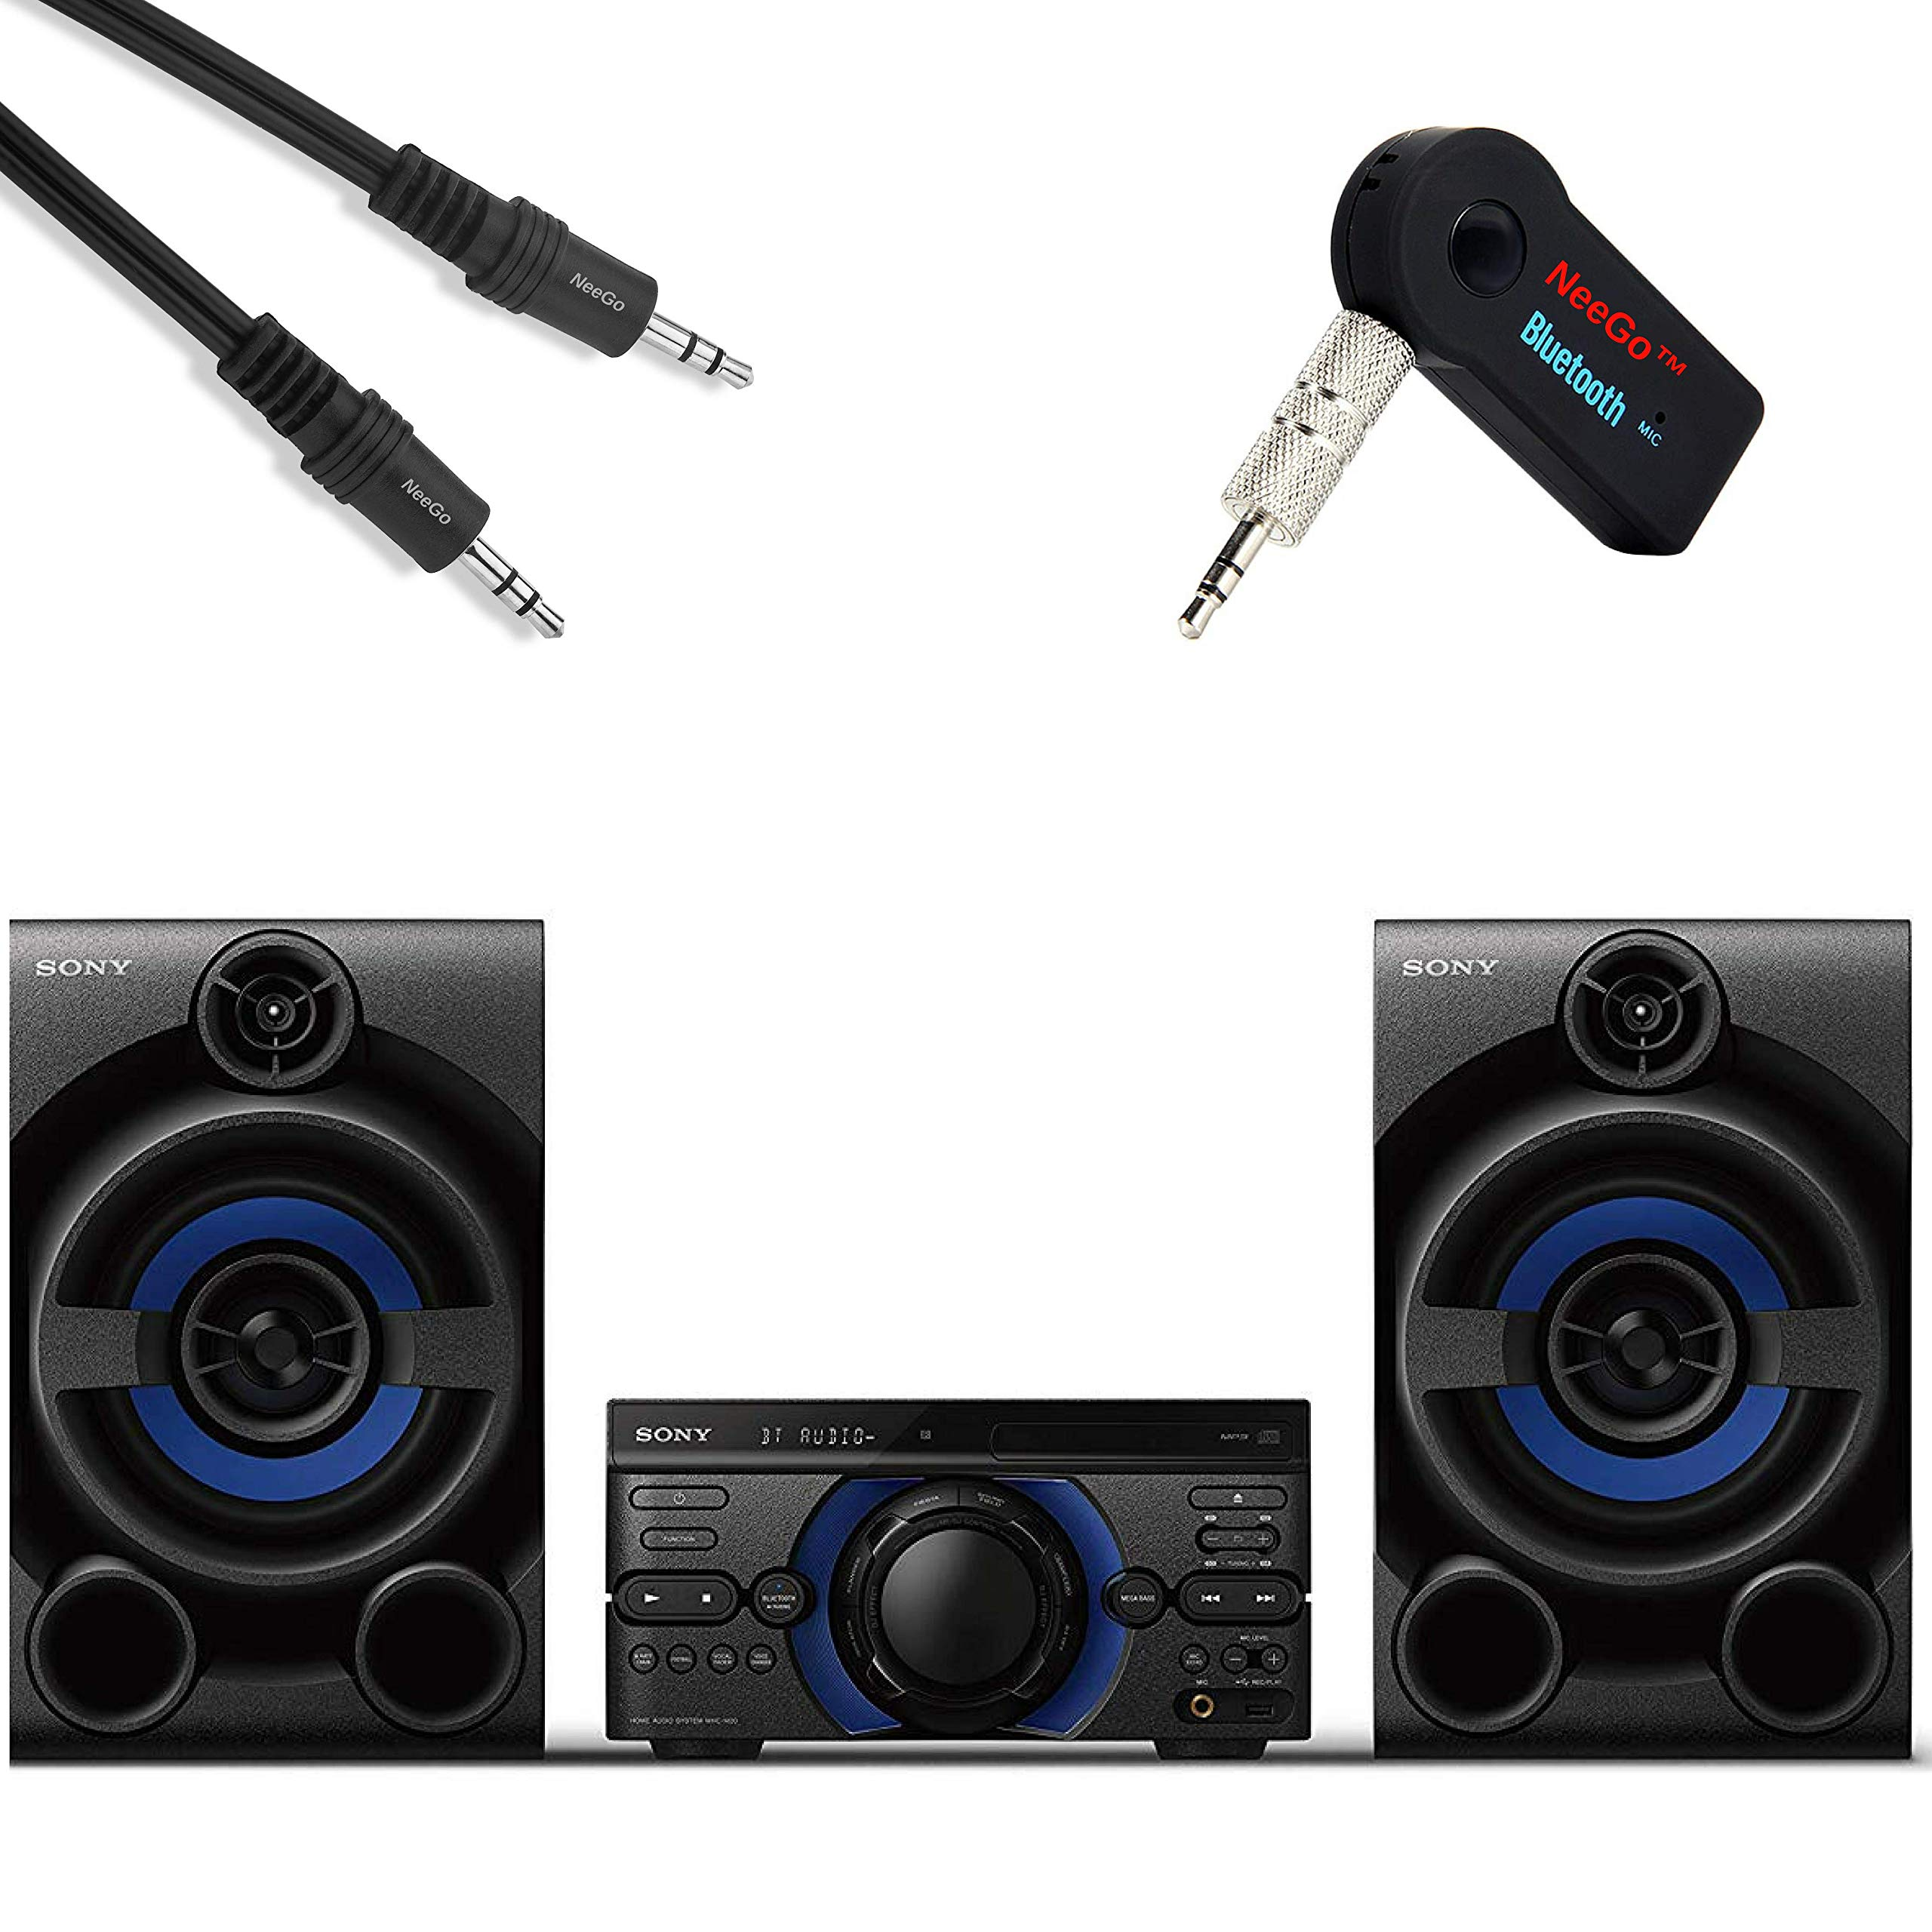 Sony High Power Audio System Bundle - [3] Piece Set Includes: High Power Audio System with CD, NeeGo Bluetooth Receiver; NeeGo 3.5mm AUX Cord